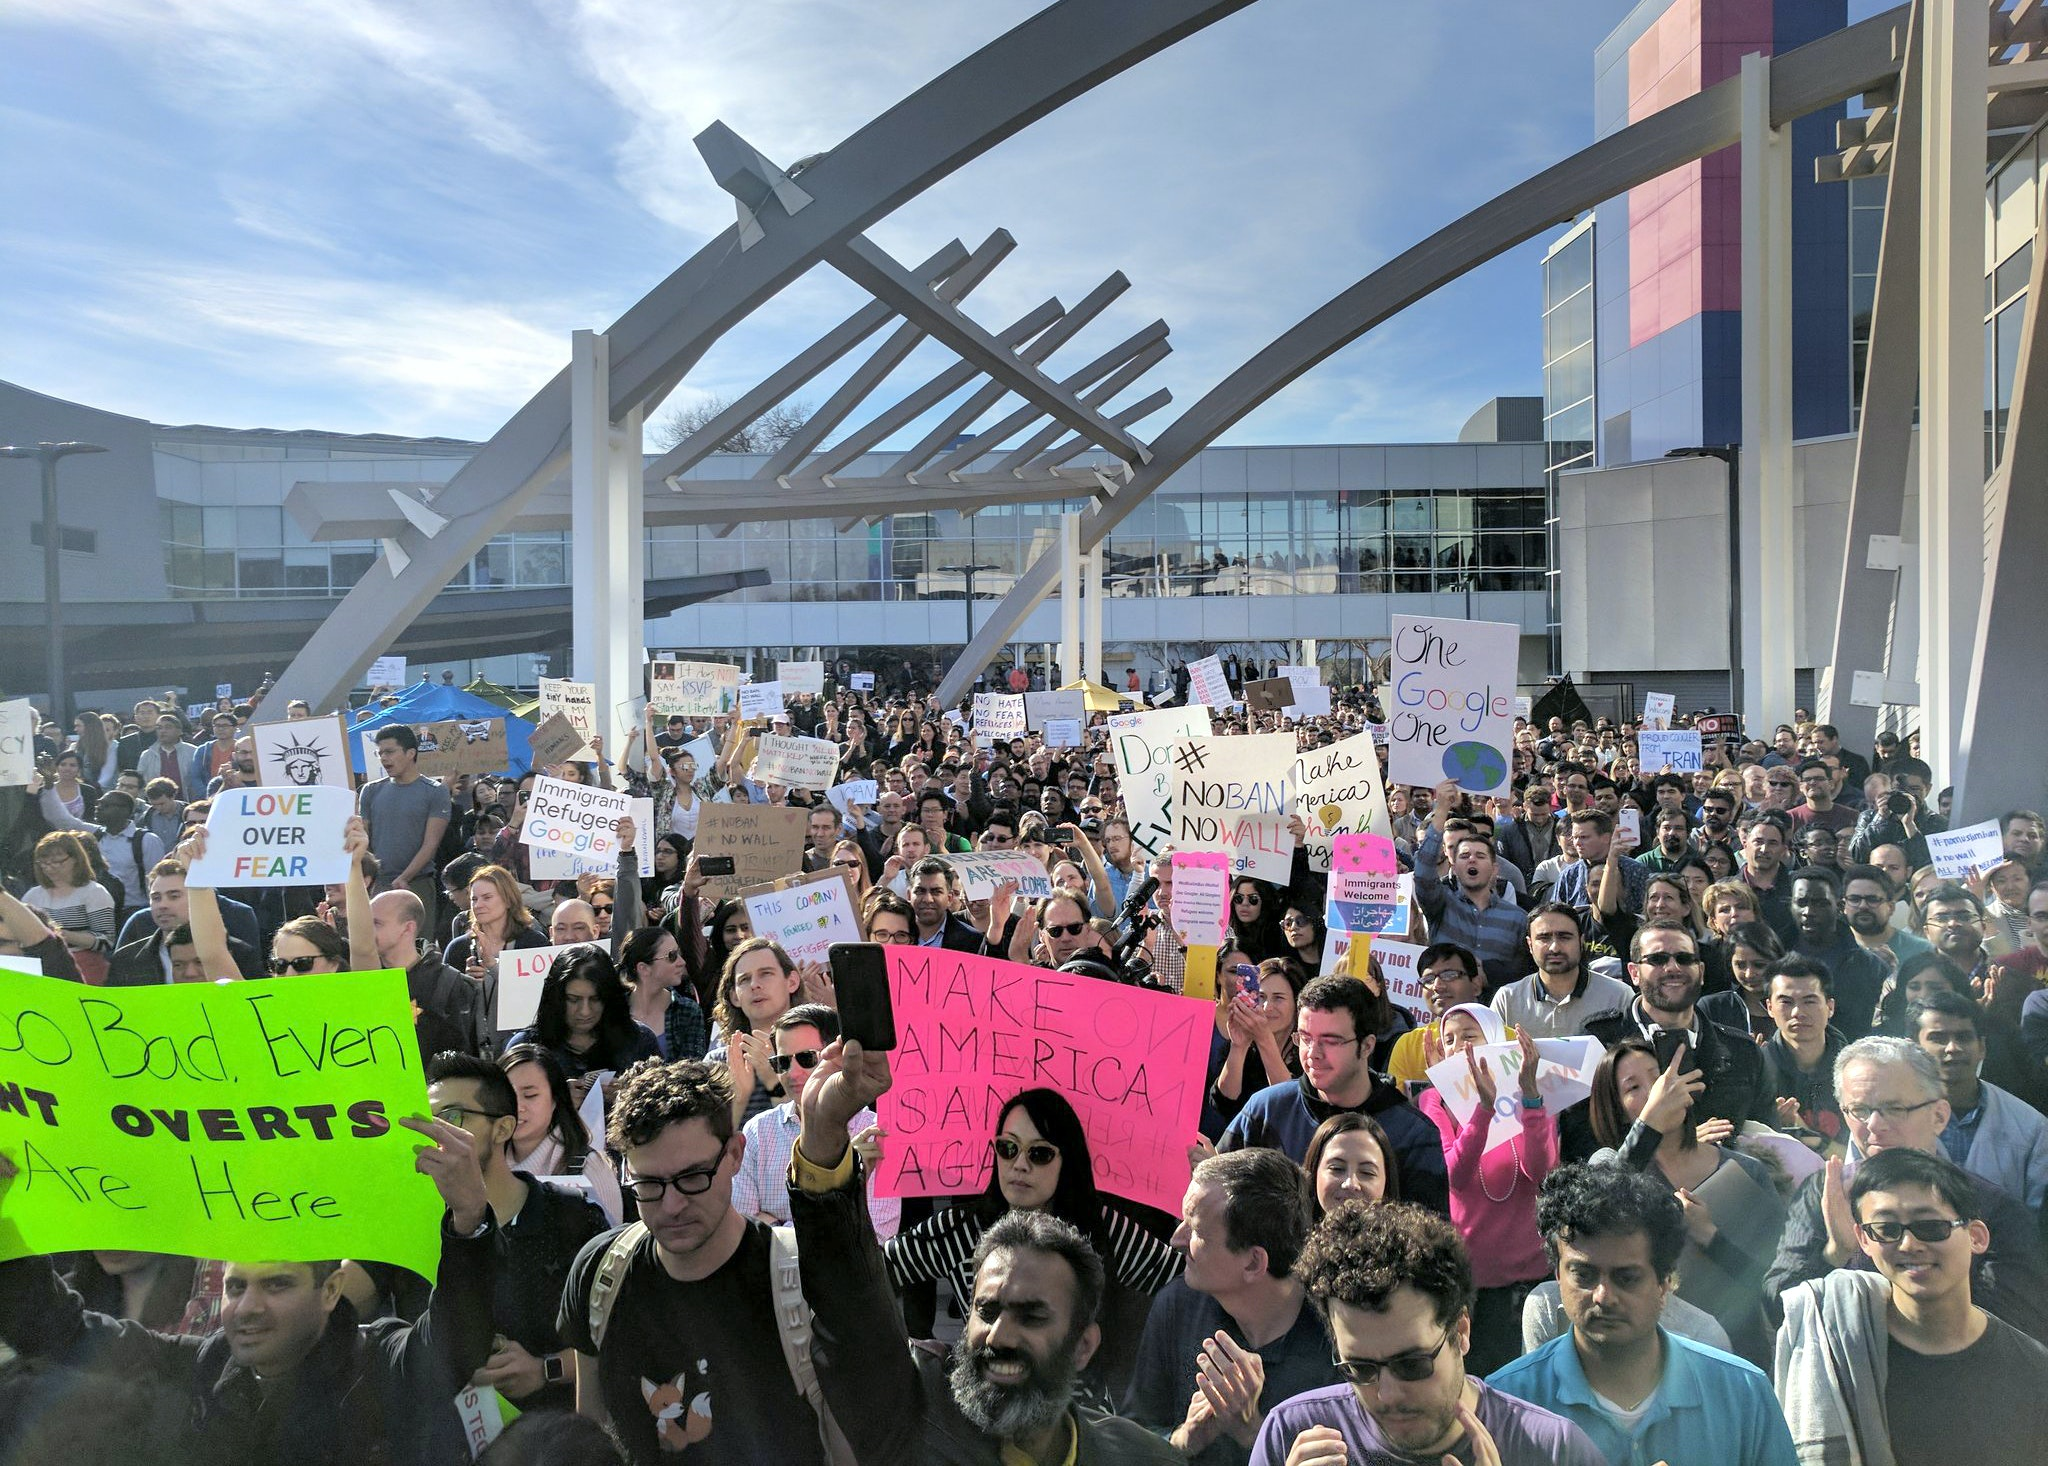 Google employees demonstrate against Trump's travel ban in Mountain View, US, 30 January 2017.  (ATTENTION EDITORS: FOR EDITORIAL USE ONLY IN CONNECTION WITH CURRENT REPORTING/ MANDATORY CREDIT: Photo: Moriah Maranitch/instagramm/dpa) NO WIRE SERVICE Photo: Moriah Maranitch/instagram/dpa